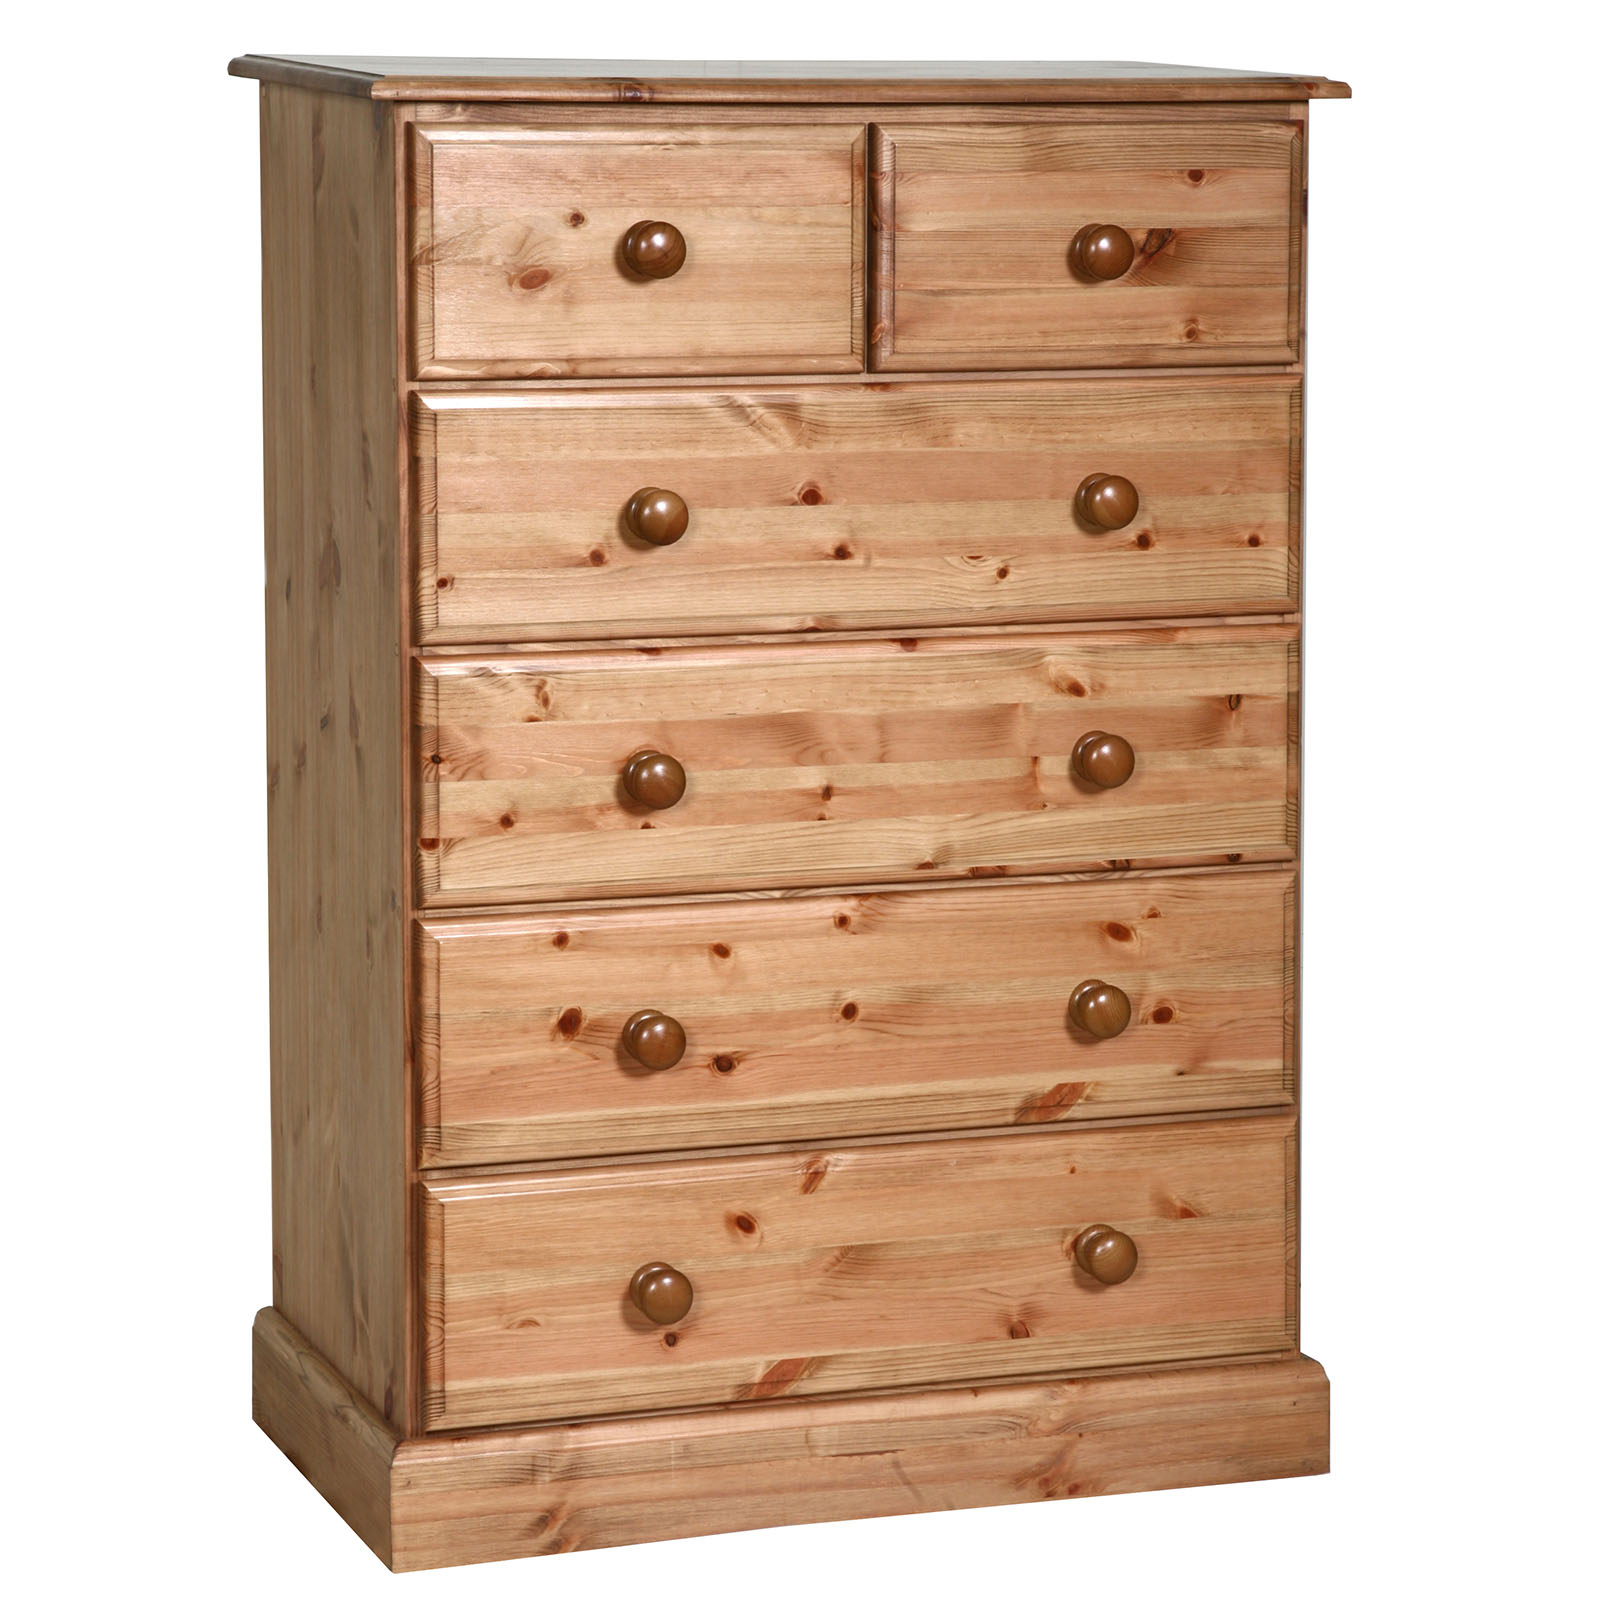 Chest of Drawers (made by Realwoods)